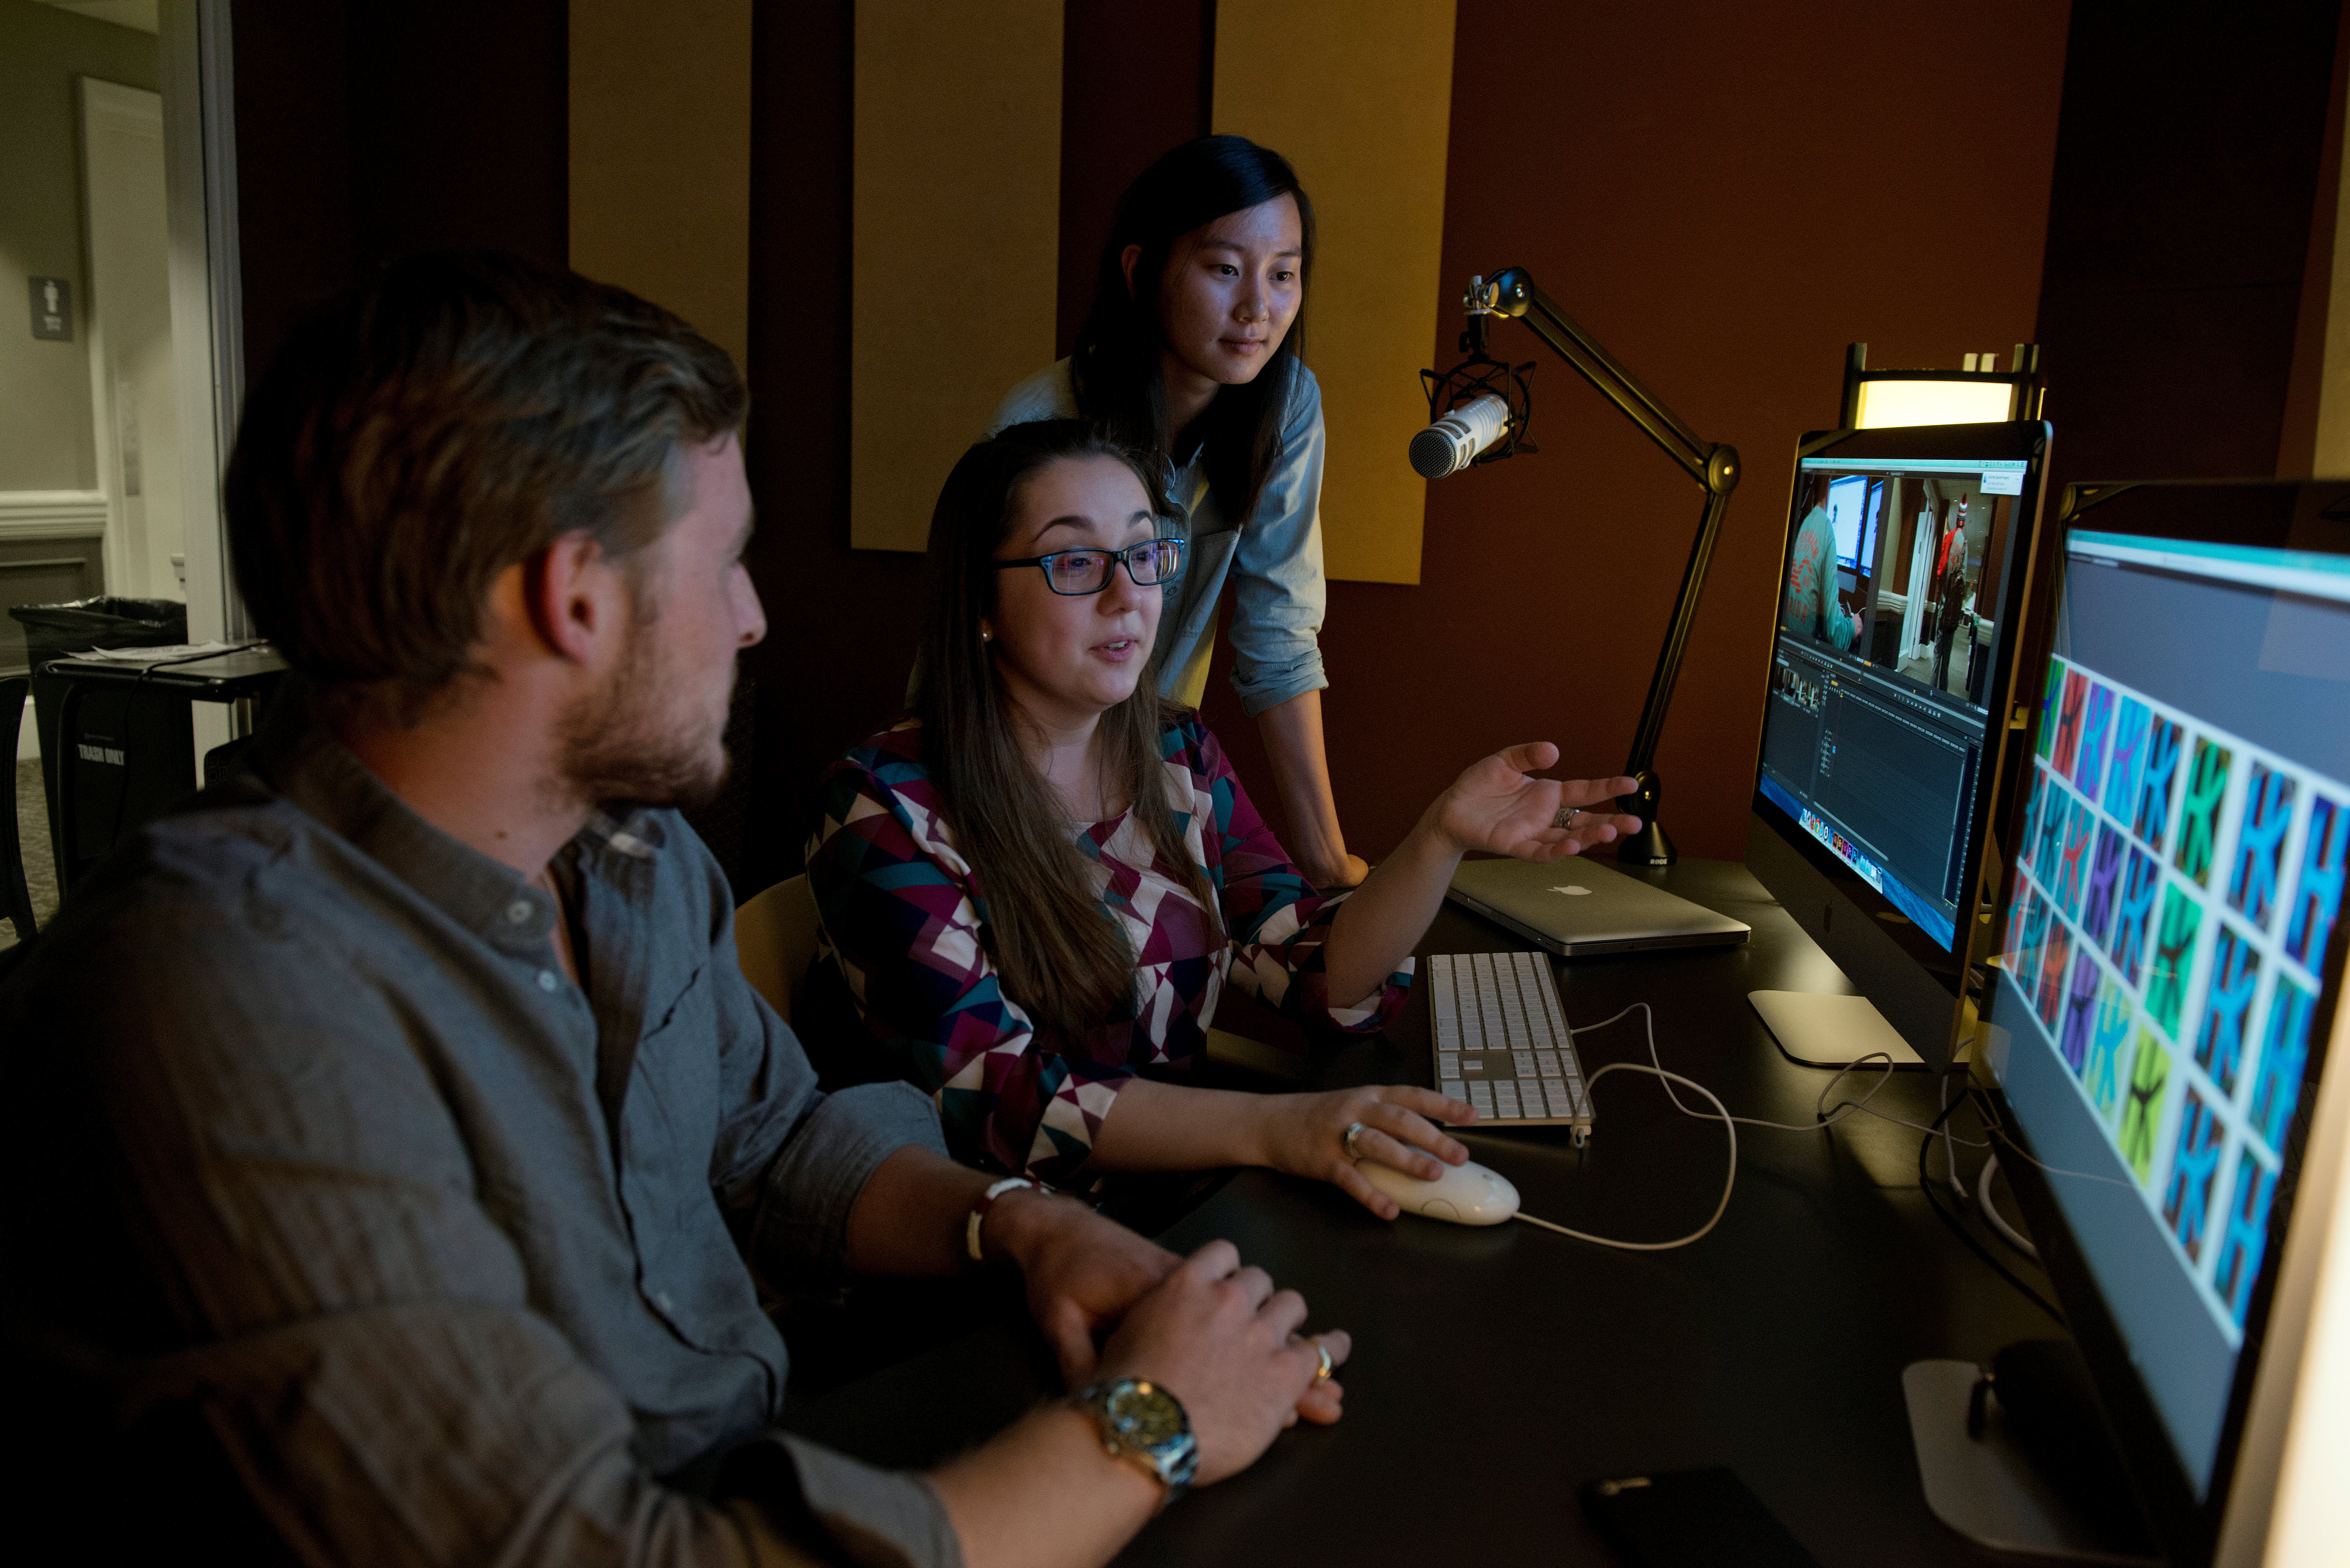 IMedia students work in one of the department's editing suites. Students, all graduating in 2015, are Anna Kim, Emily Yarborough (glasses), and Henry Kean.